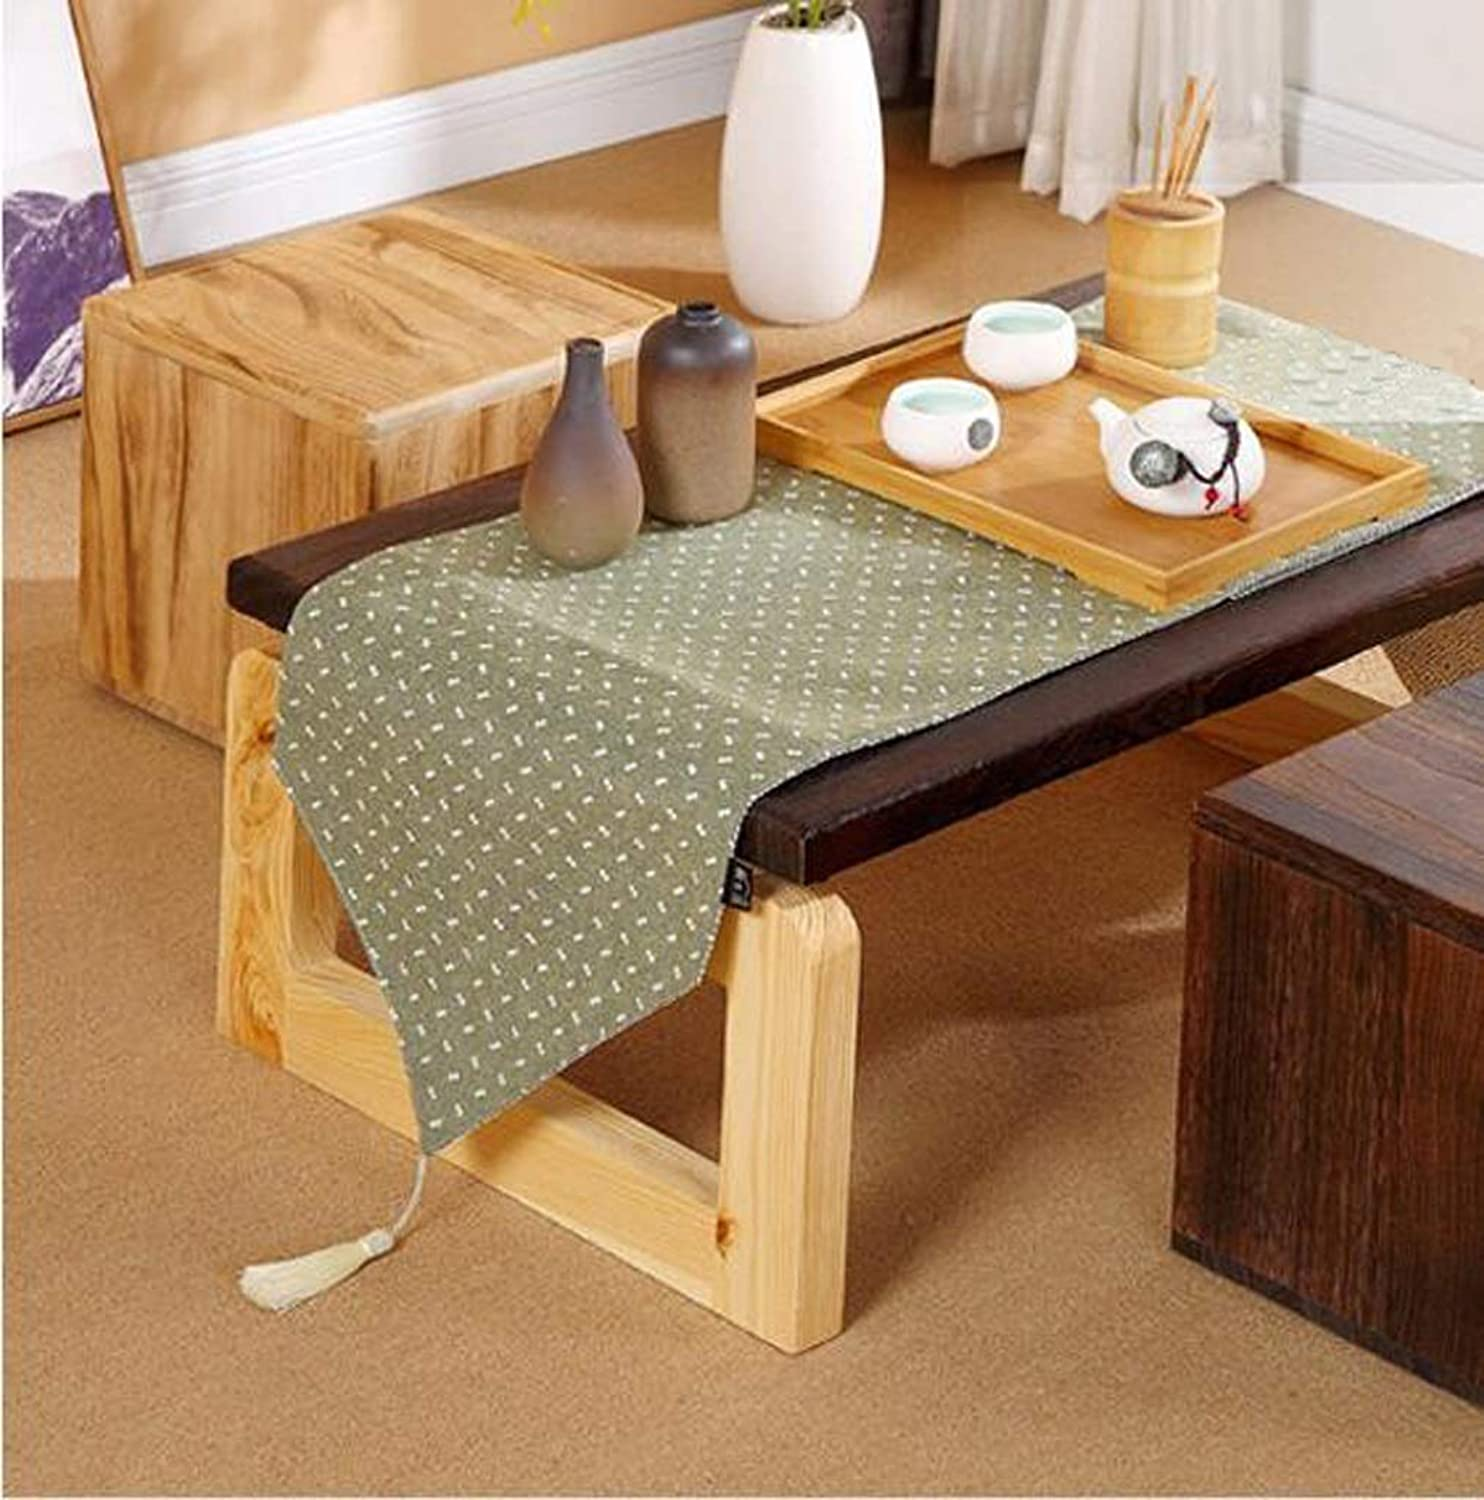 Nwn Wooden Stool Fashion Seat Change shoes Small Chair Living Room Makeup Stool Table Furniture (color   Wood color)